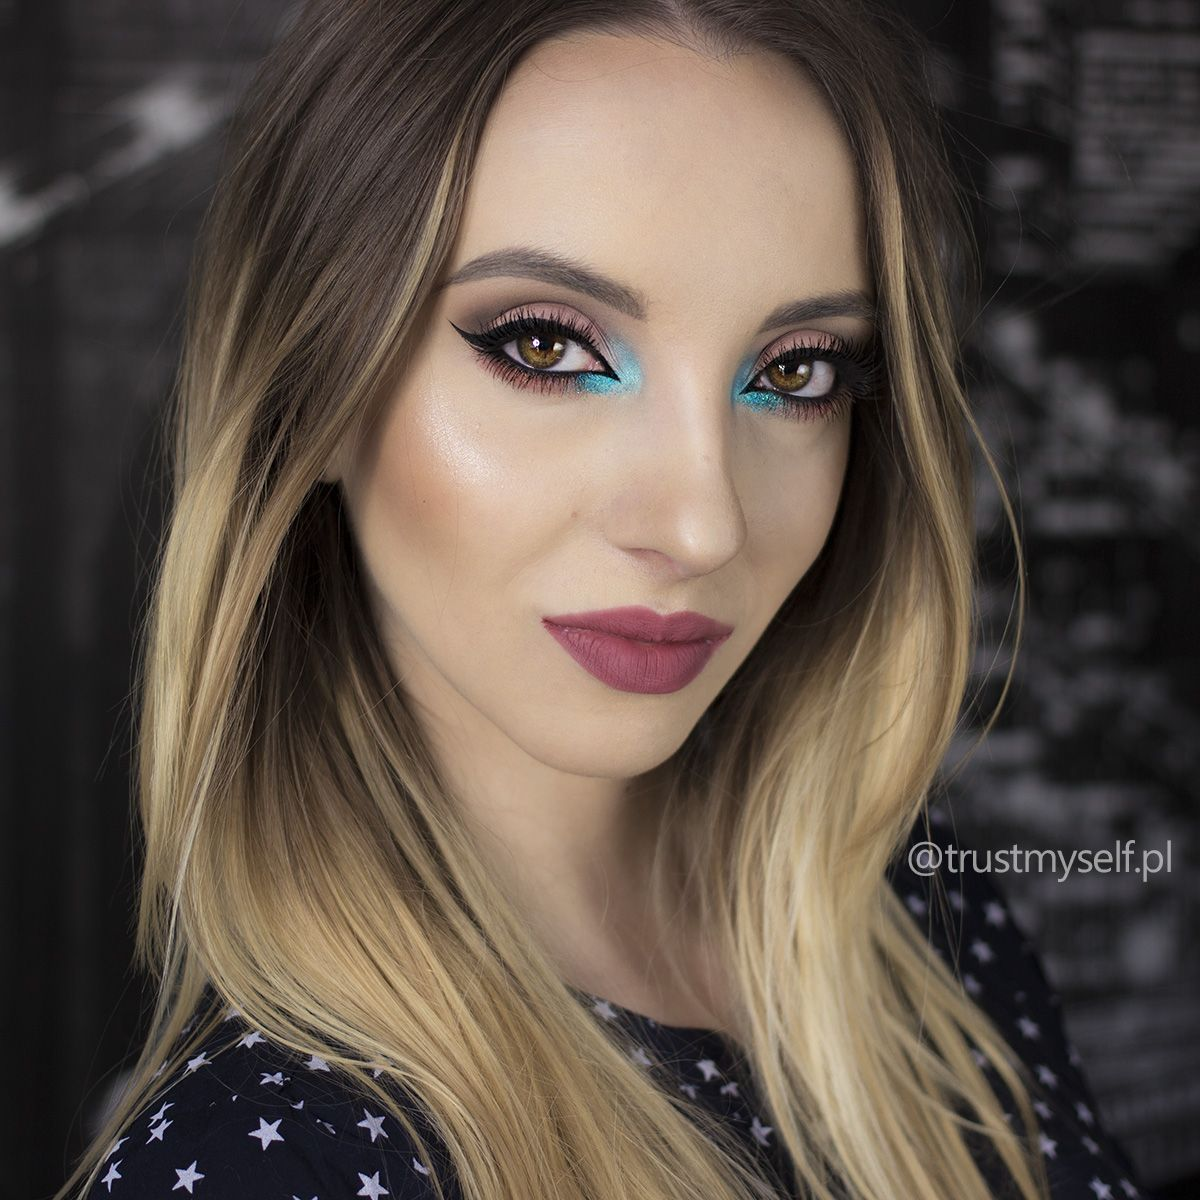 Keeping summer makeup tutorial makeup geek art of fashion watch makeup video tutorials learn tips from the experts and even buy our makeup online all items ship worldwide and are paraben free baditri Image collections